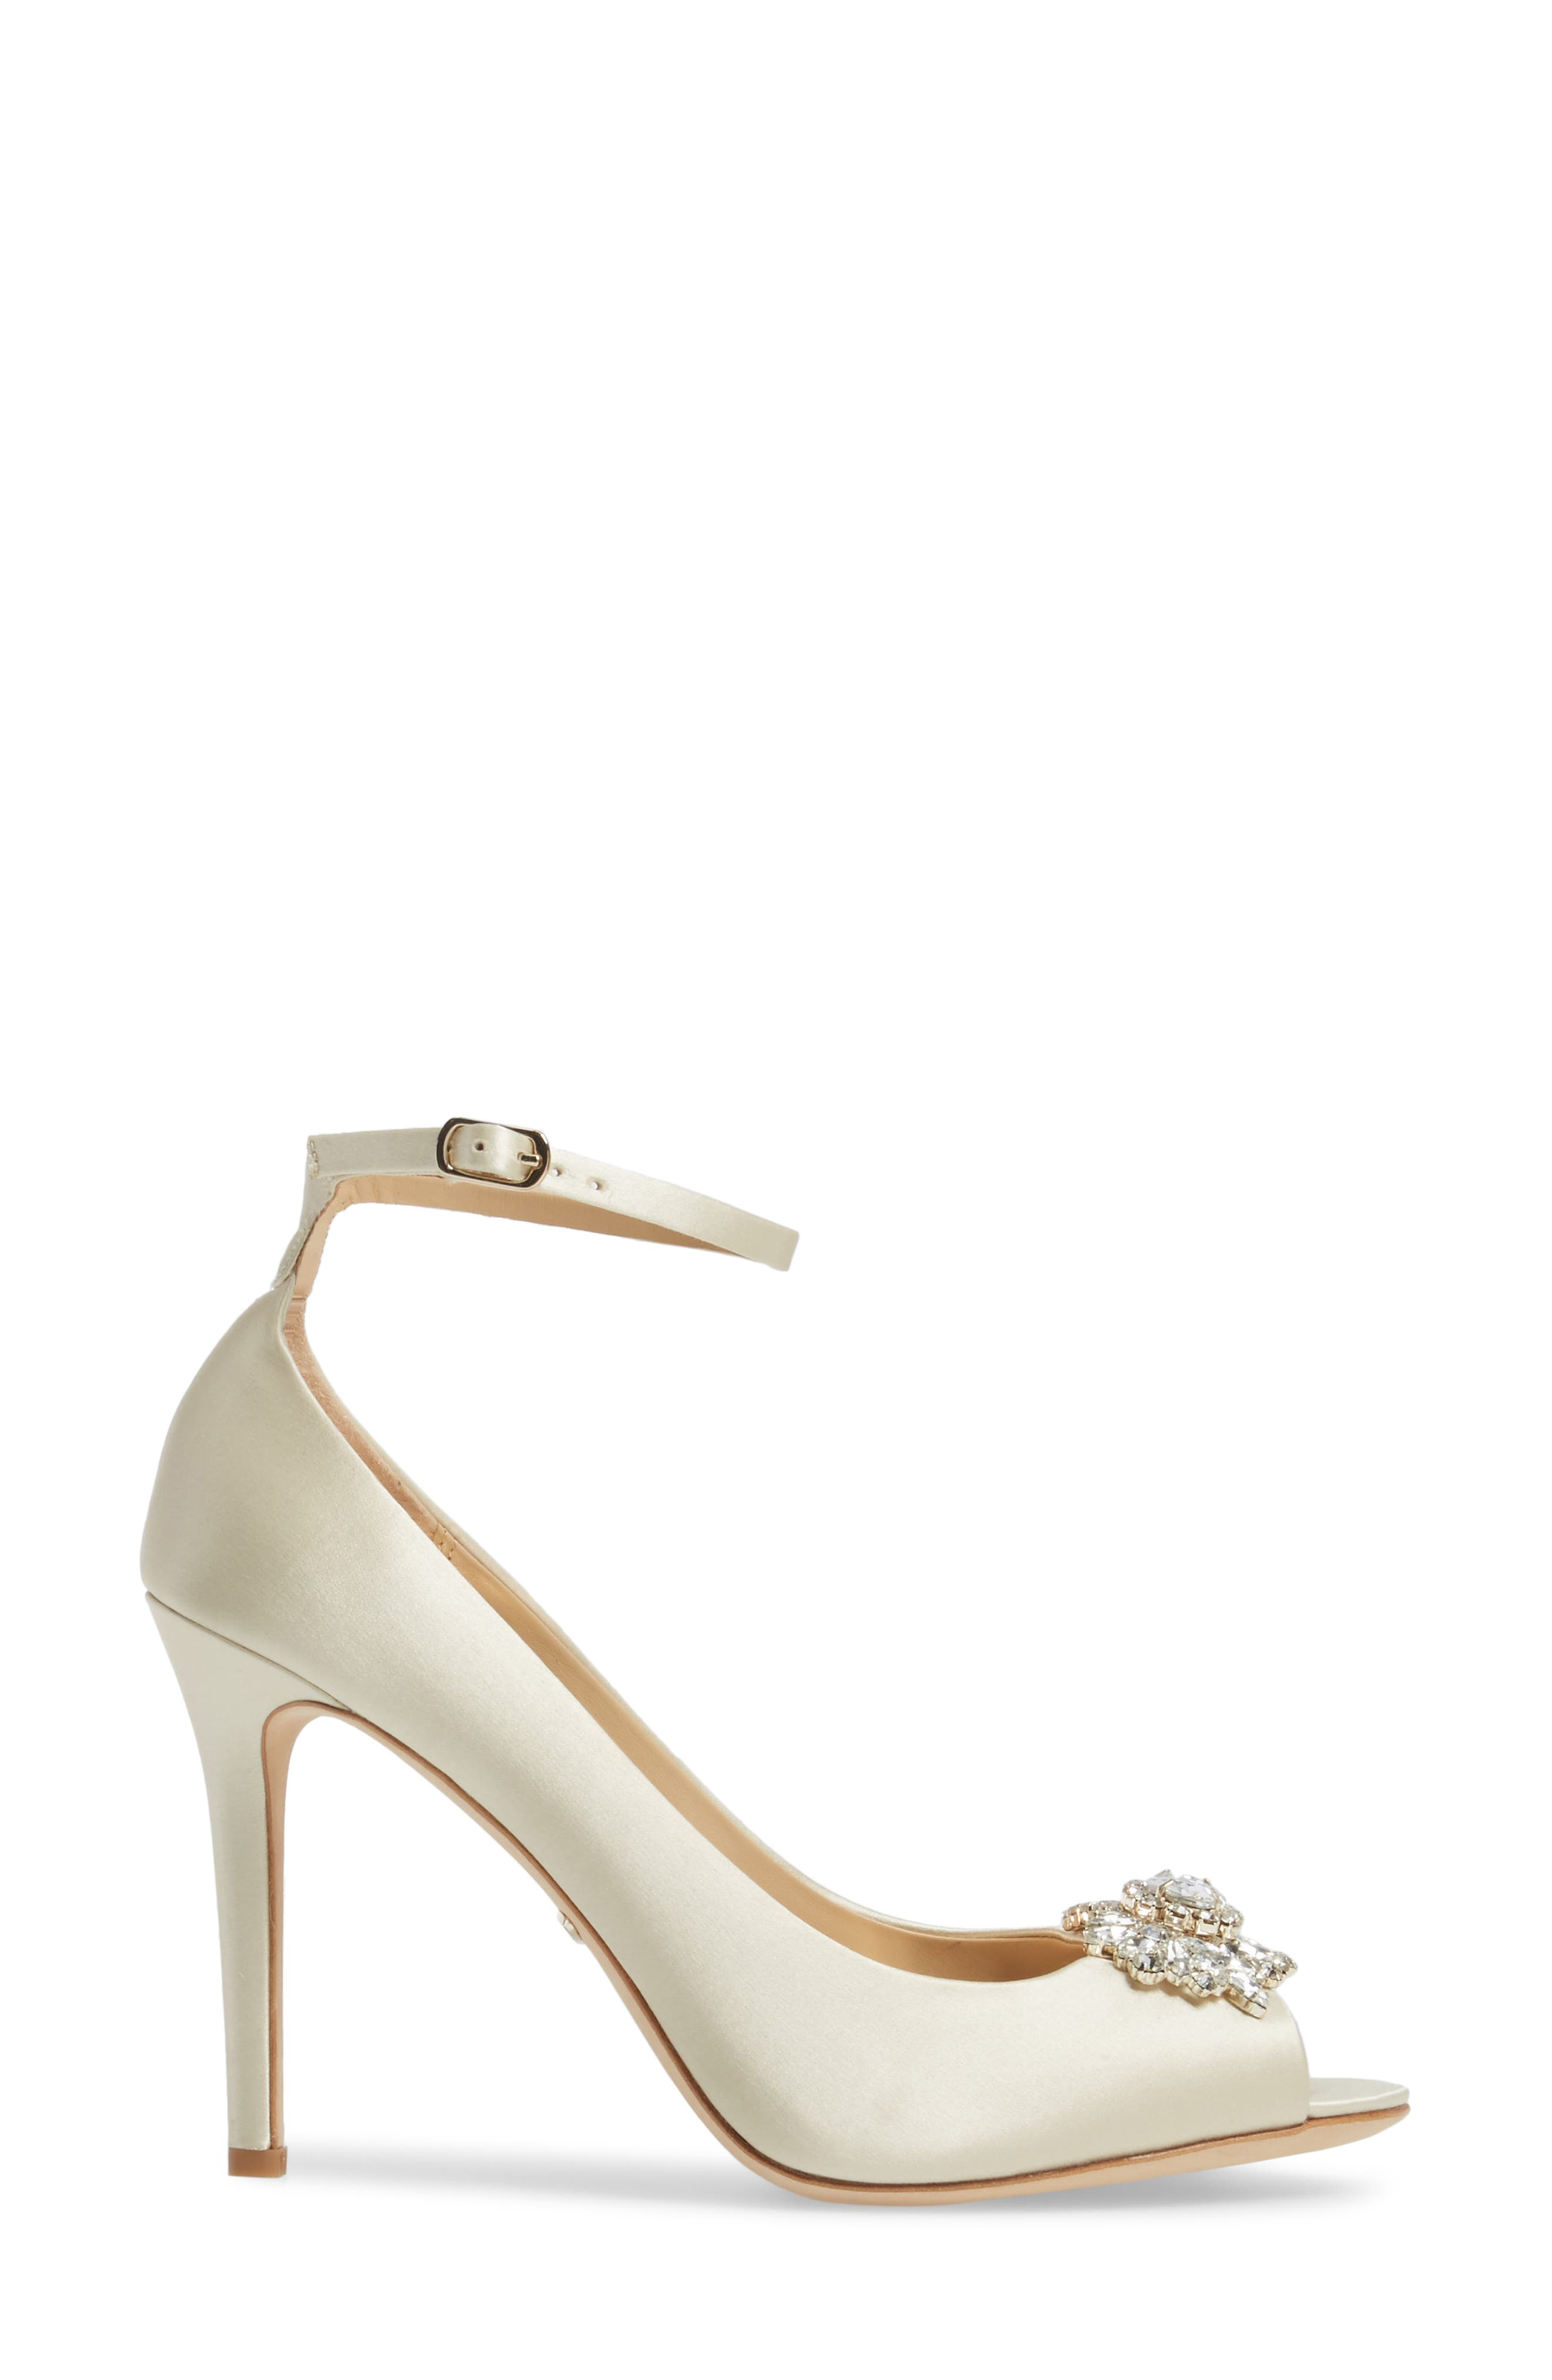 Alternate Image 3  - Badgley Mischka Kali Ankle Strap Pump (Women)